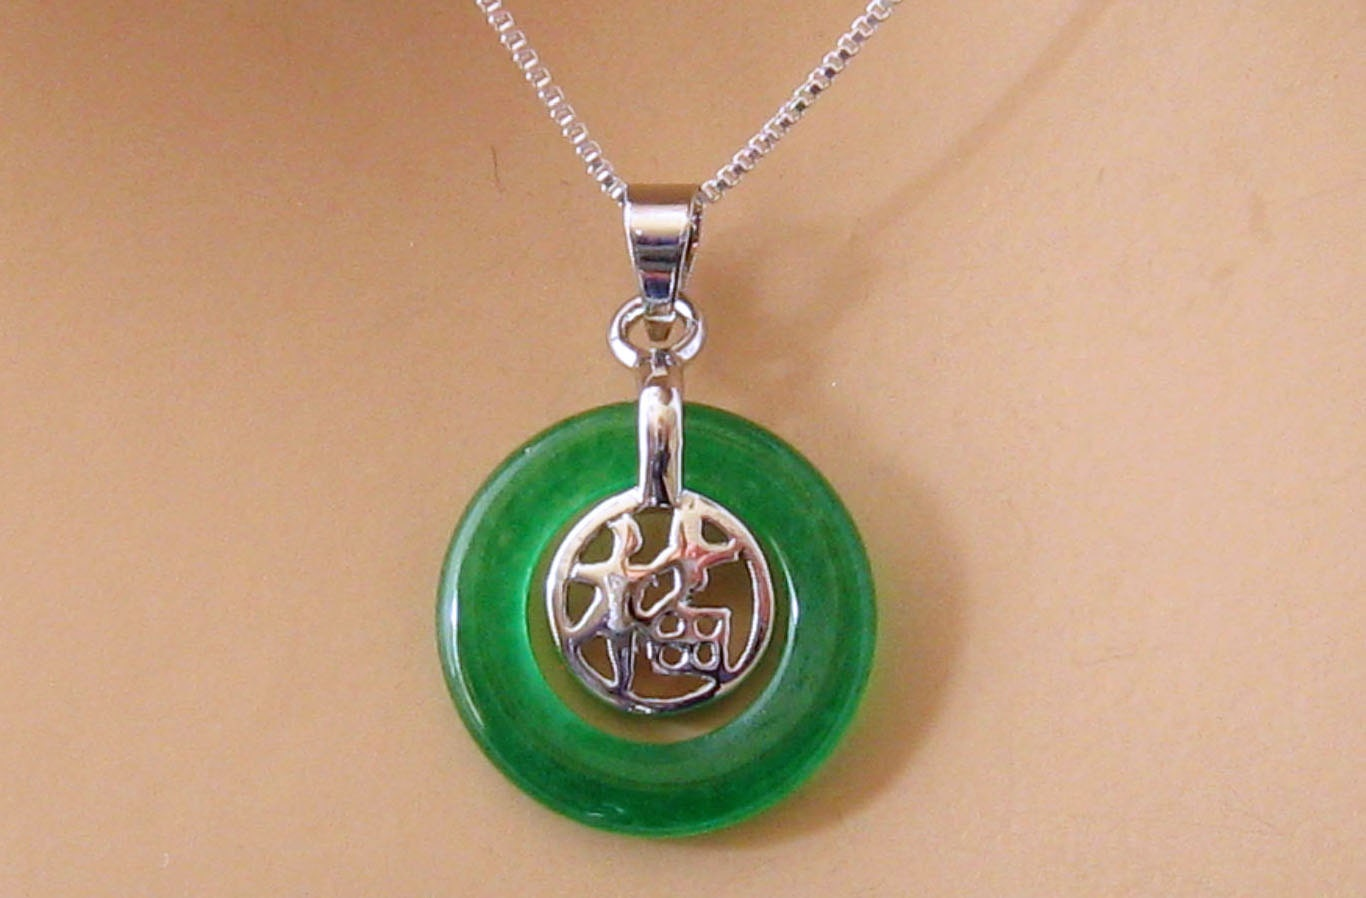 Green jade necklace sterling silver good luck symbol green for Pictures of jade jewelry